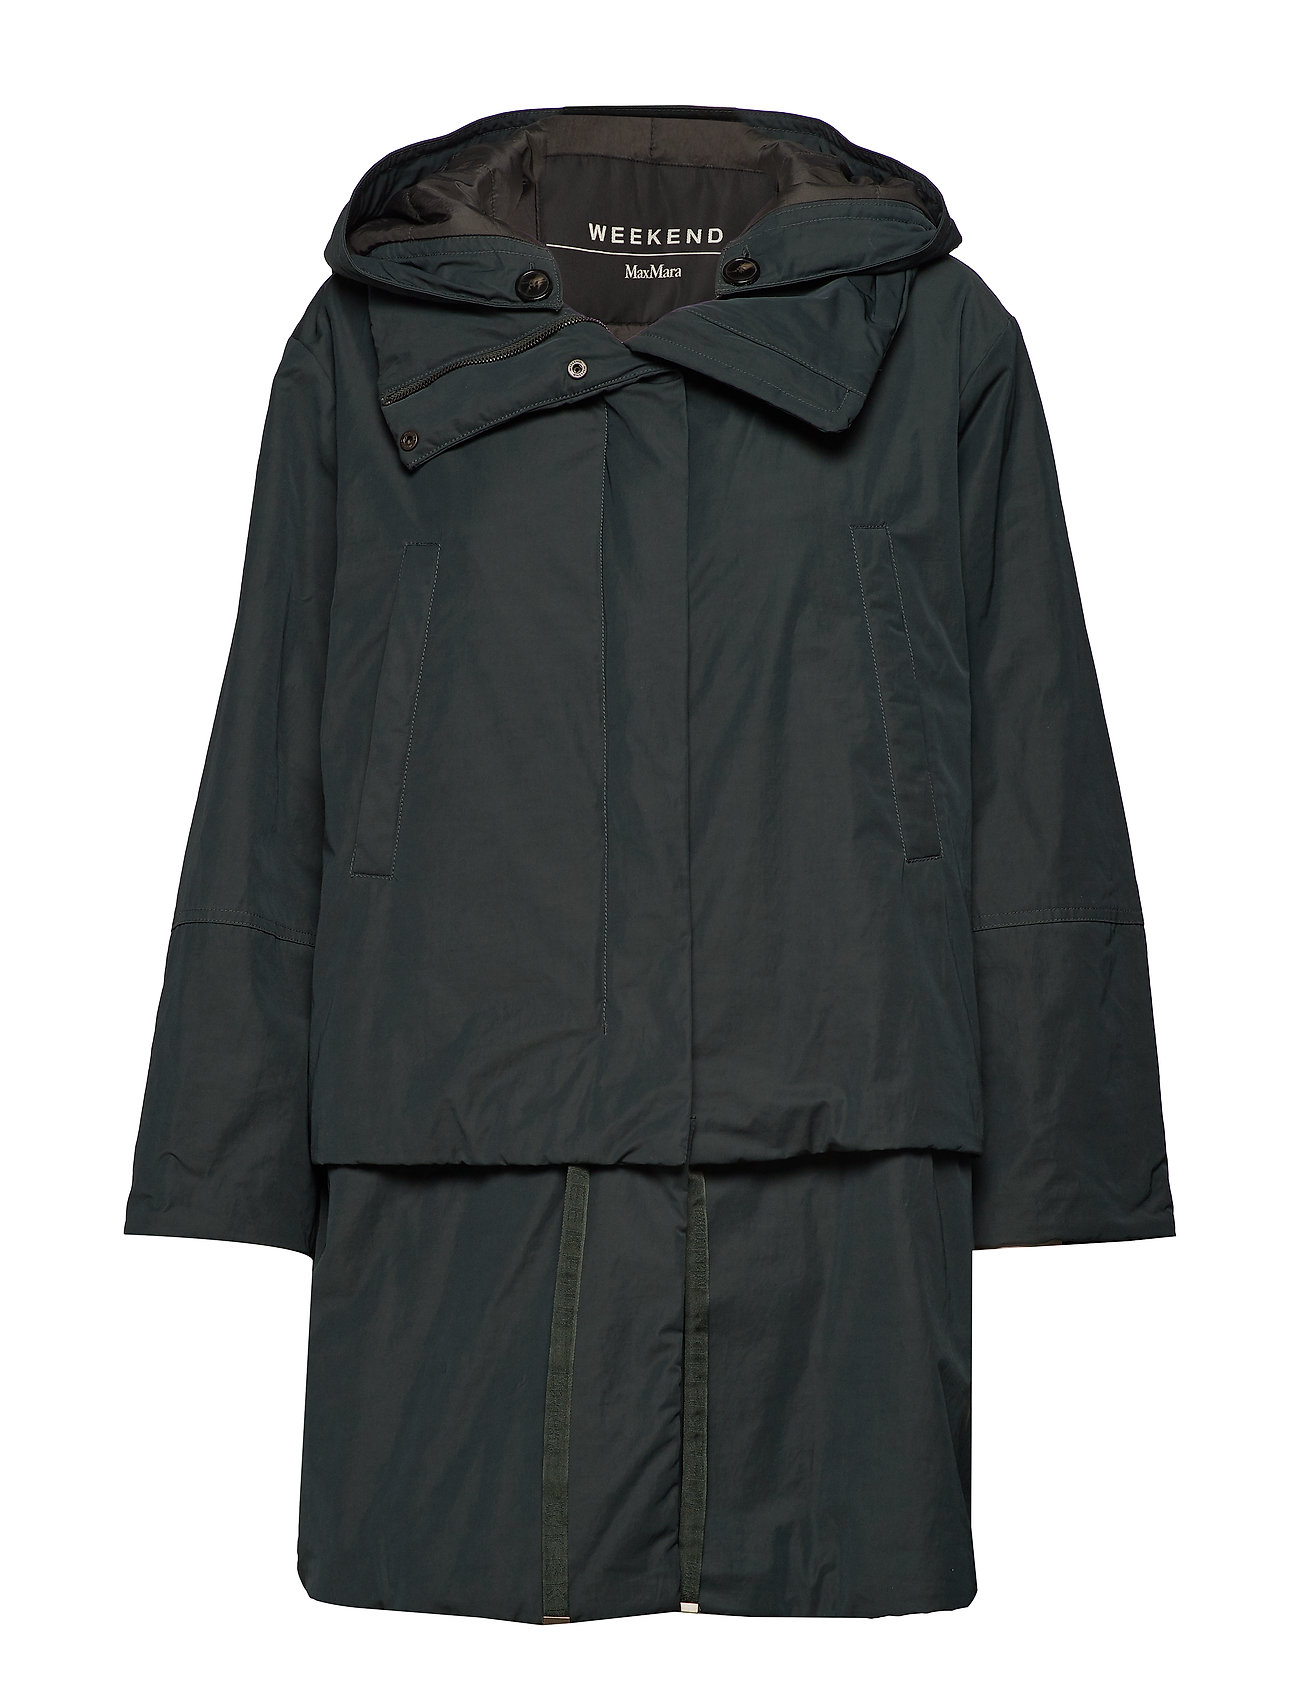 Weekend Max Mara CHARLES - DARK GREEN